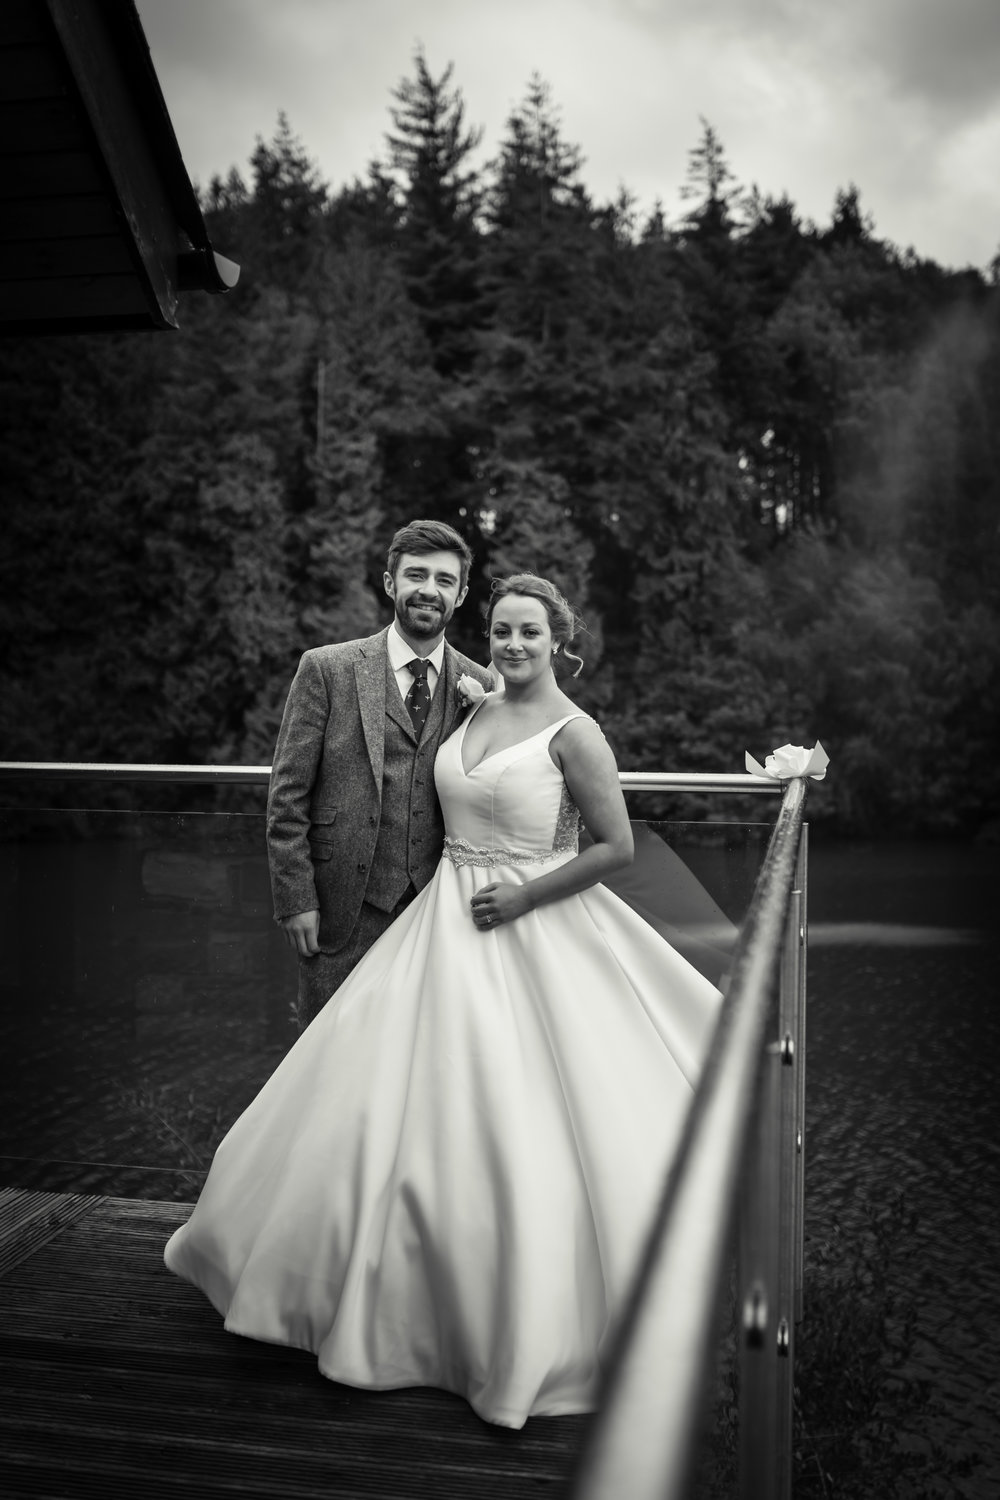 black and white portrait of bride and groom after their wedding ceremony